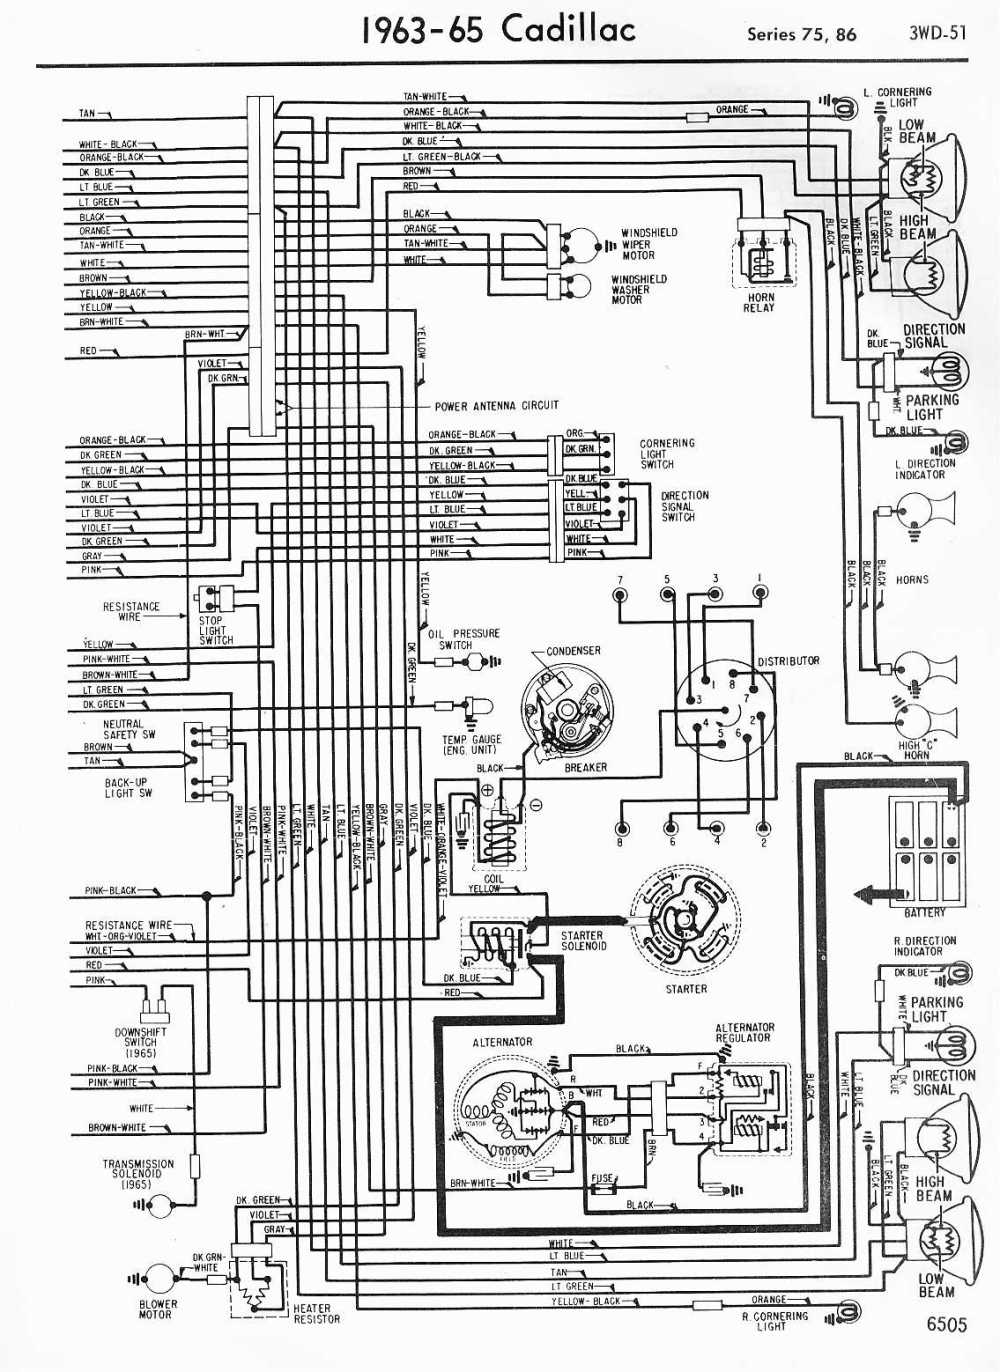 medium resolution of cadillac wiring diagrams 1957 1965 wiring diagram for a 1965 cadillac